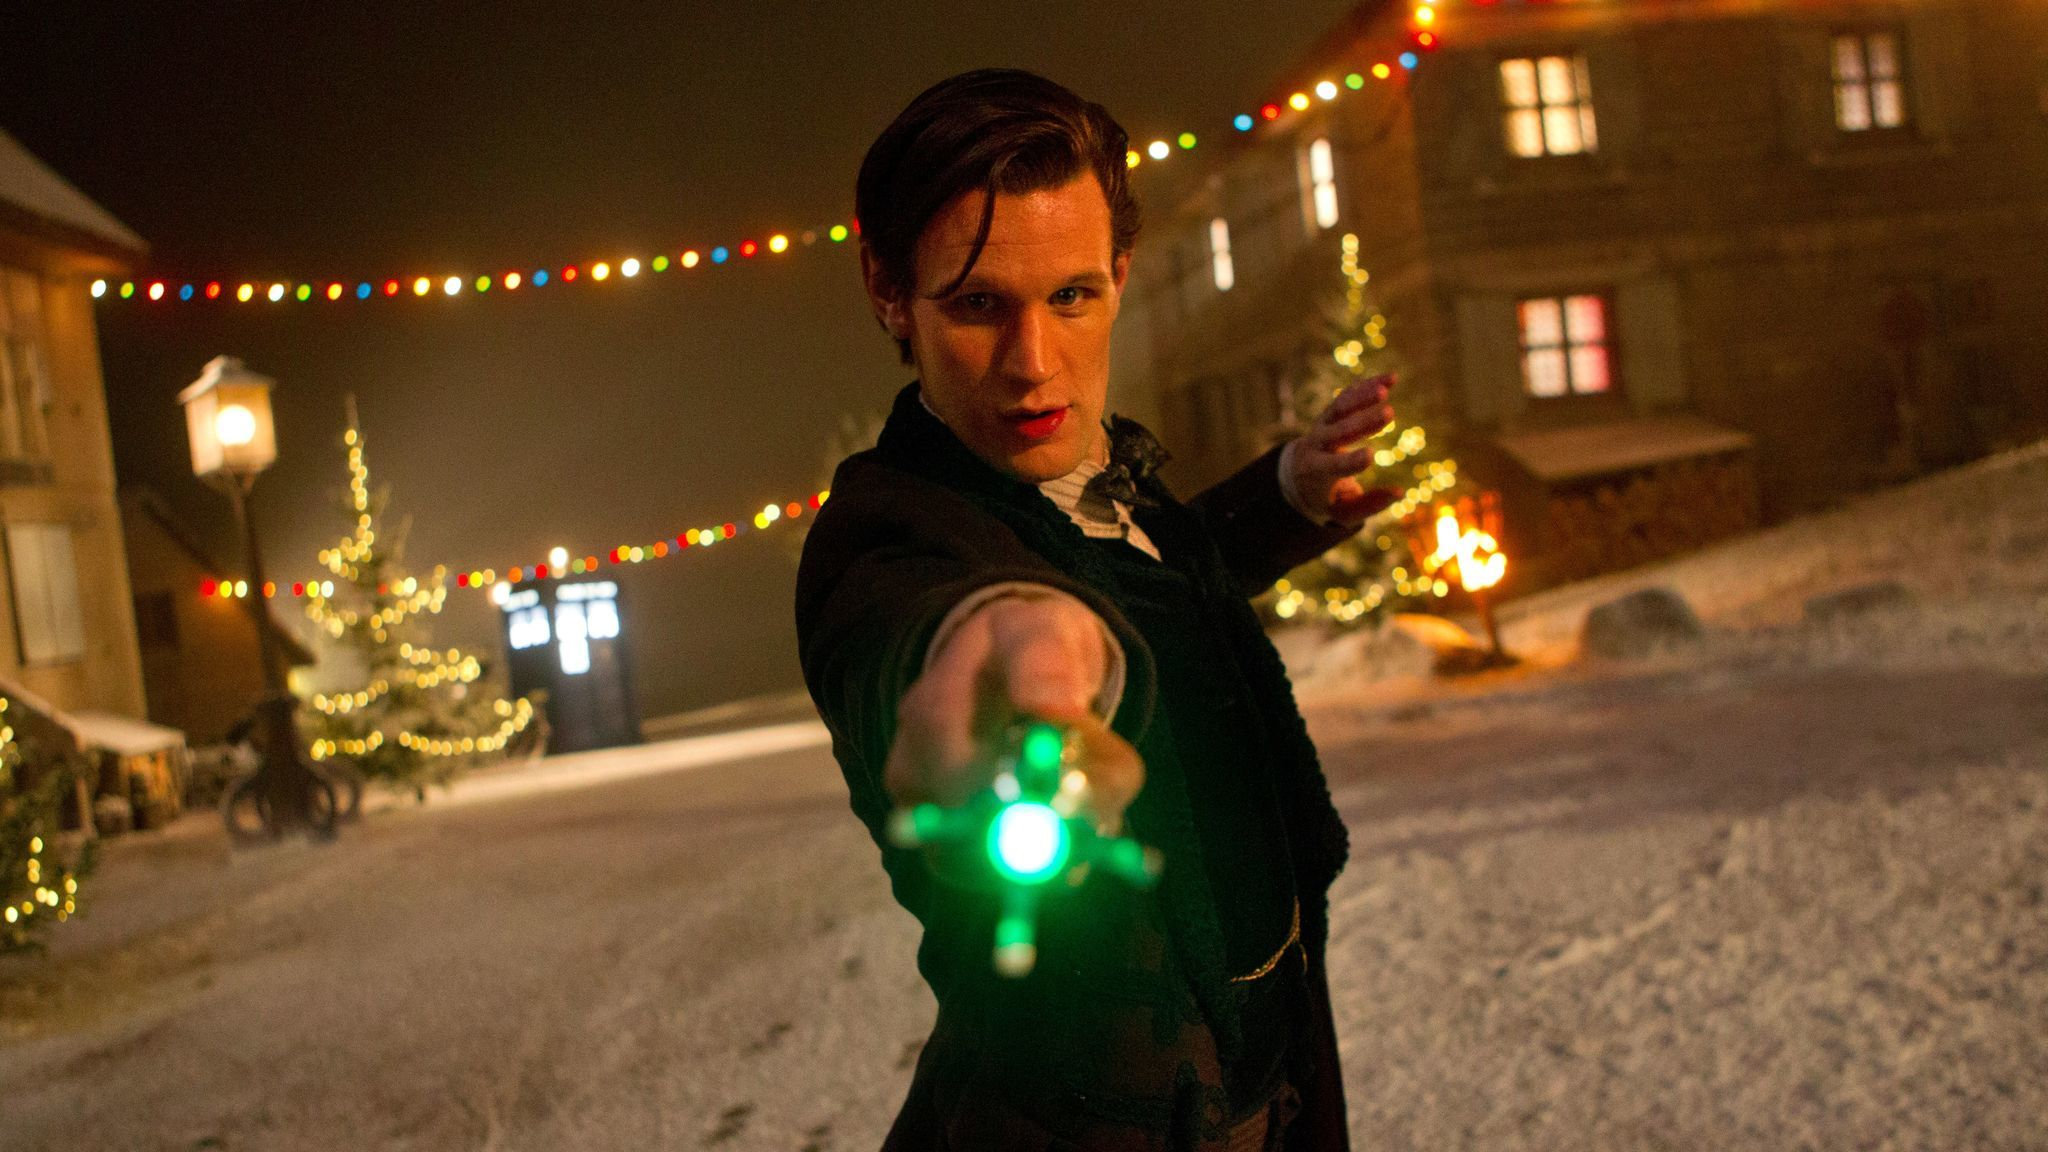 Matt Smith as the Eleventh Doctor in